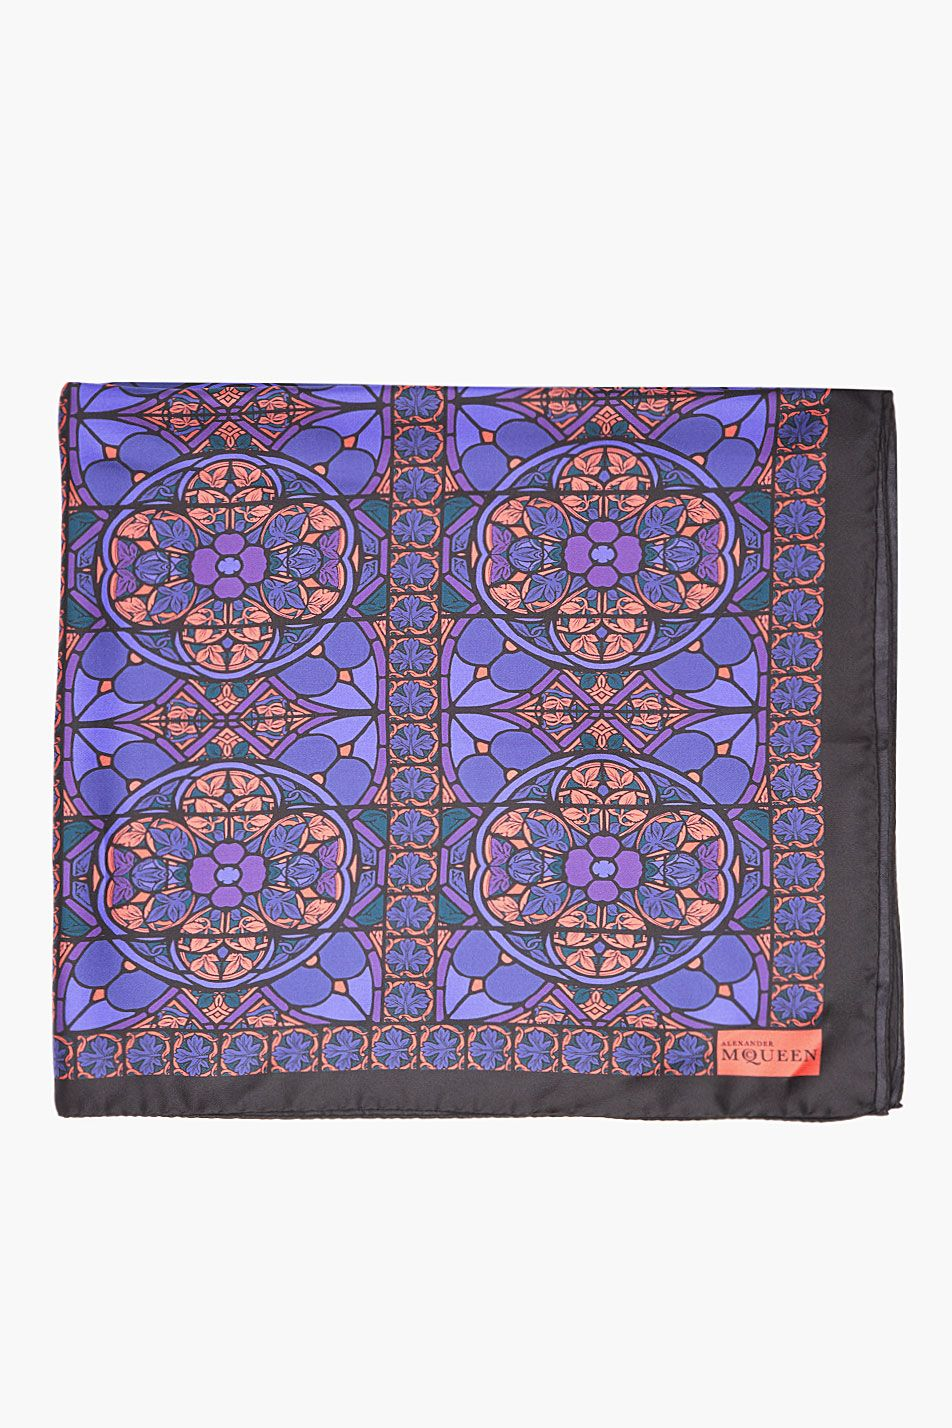 "ALEXANDER MCQUEEN //  Indigo Silk Stained glass Print Scarf  32259M010013  Square silk scarf in black. Stained glass print throughout in indigo, purple, and red. Logo print at corner. Tonal stitching. Approx 34"" x 34"". 100% silk. Made in Italy.  $340 CAD"